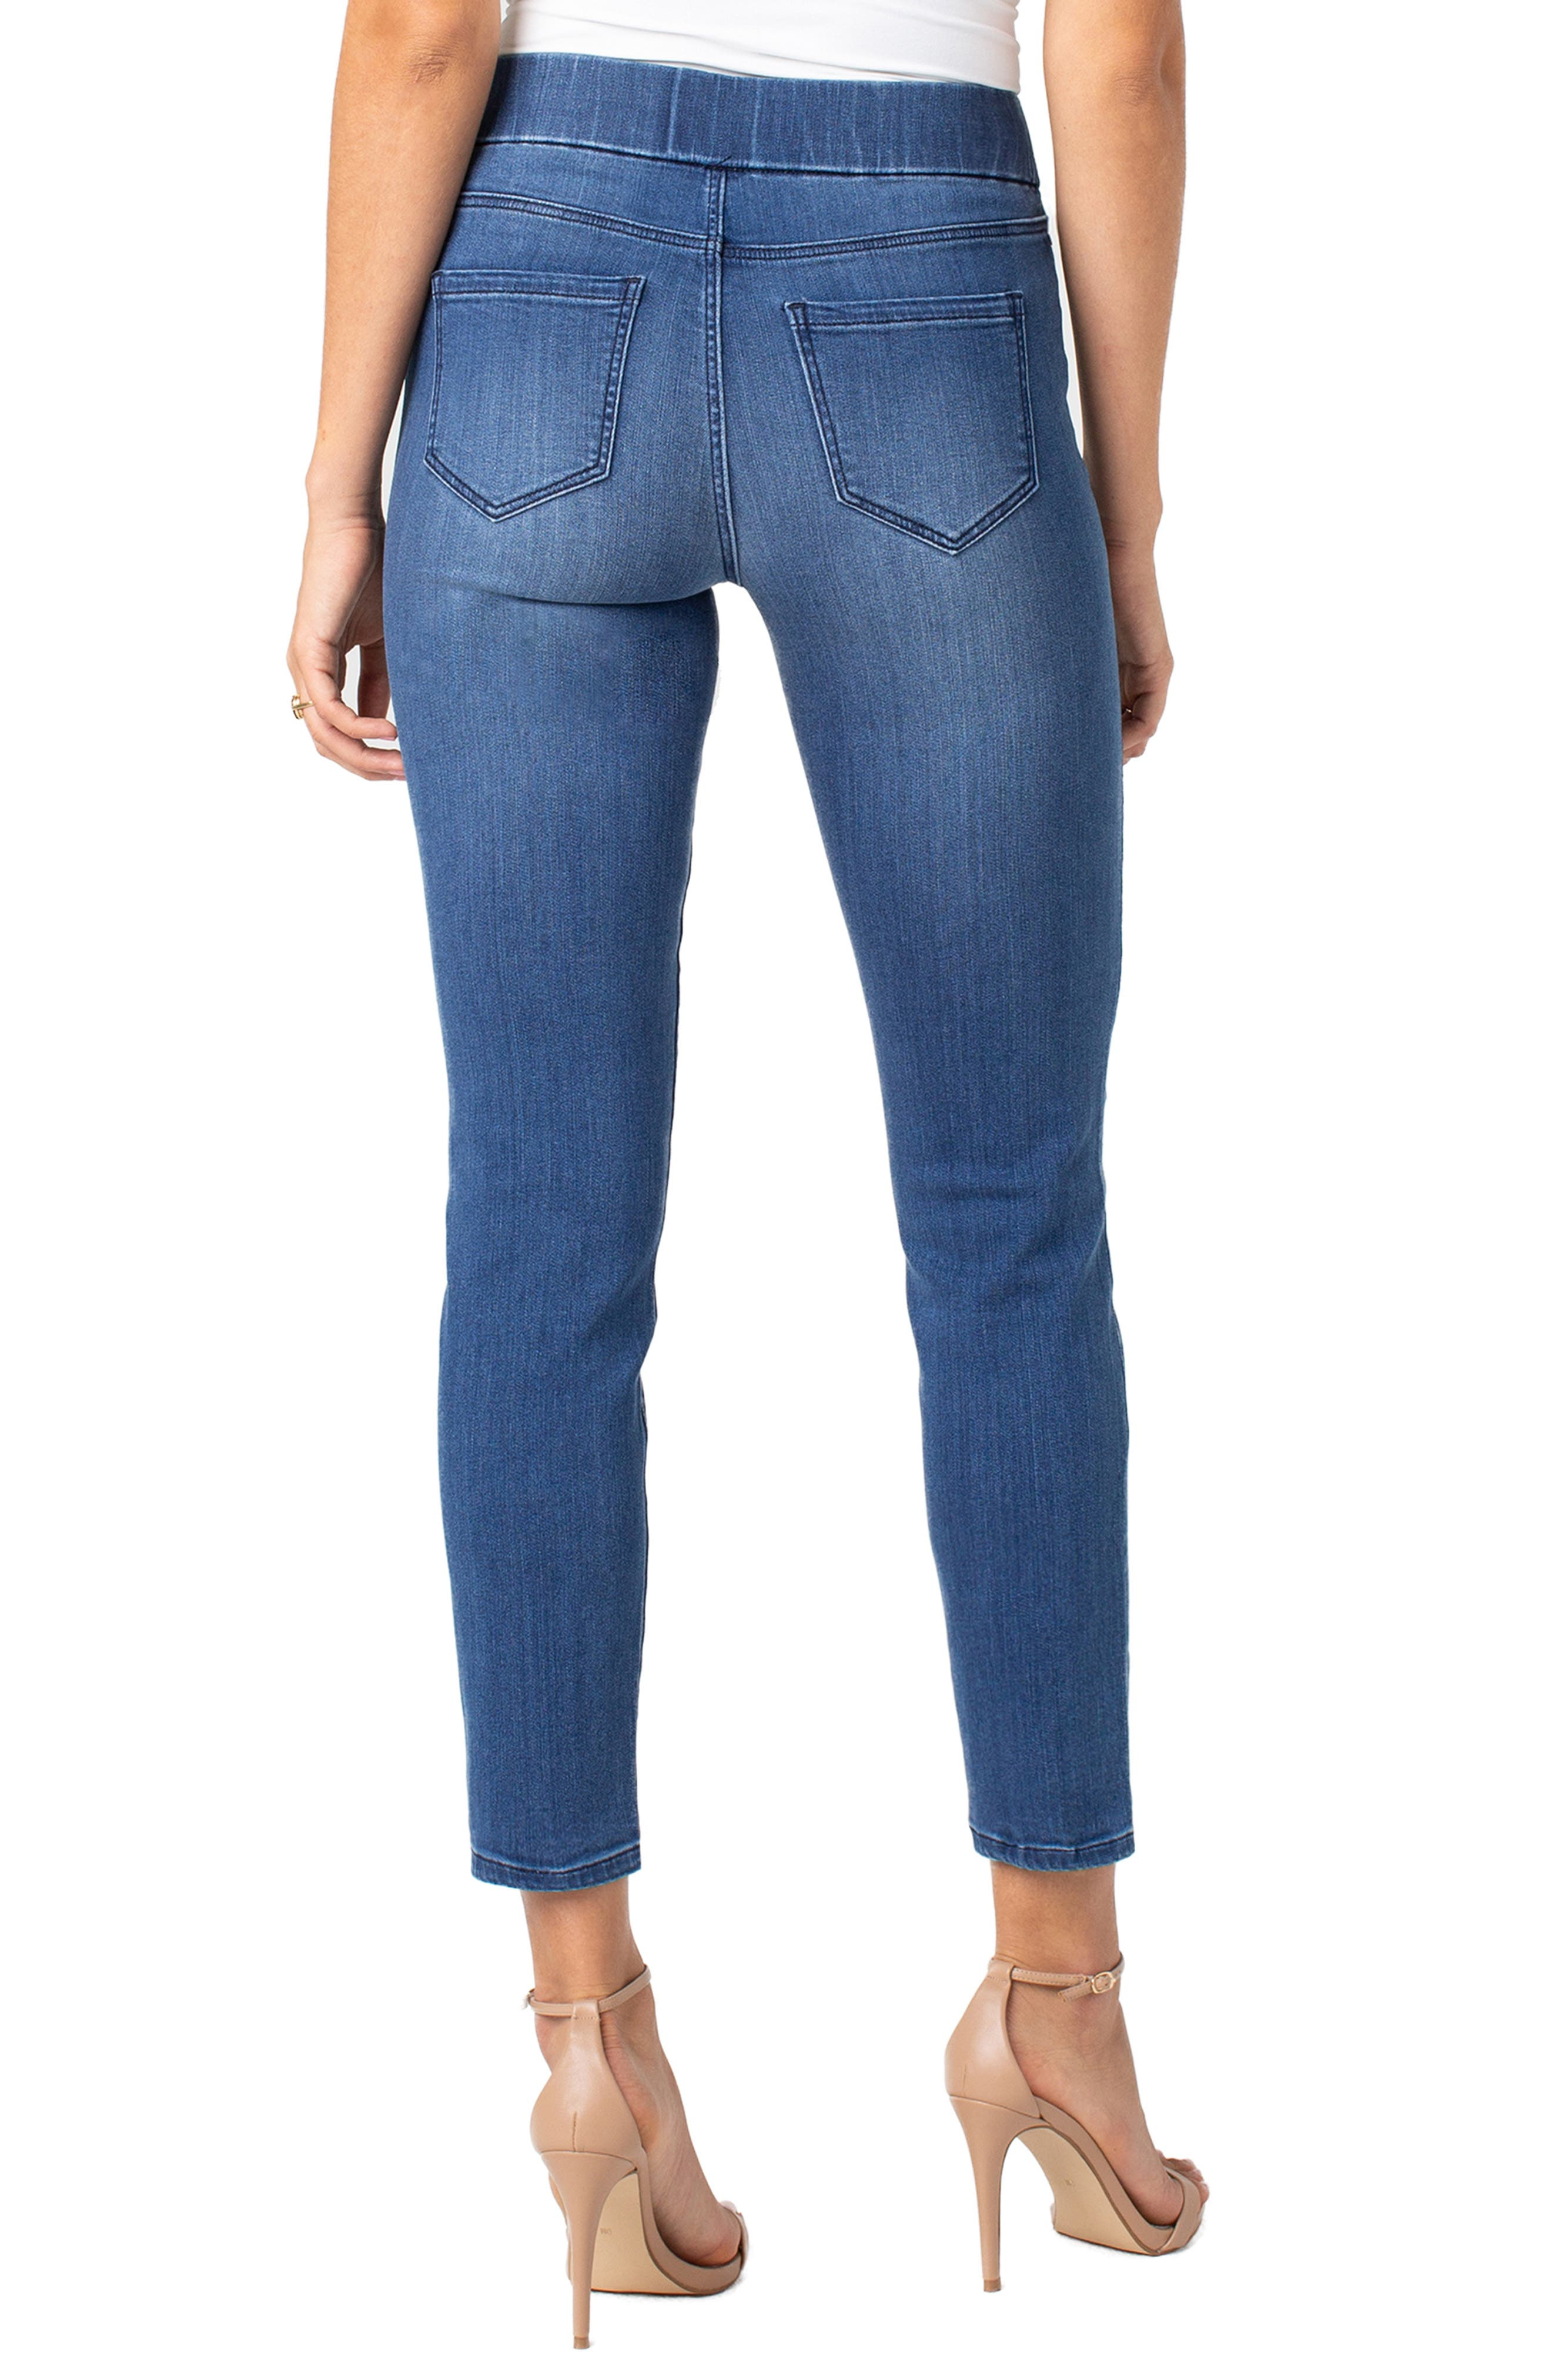 Jeans Company Meridith Pull-On Slim Ankle Jeans,                             Alternate thumbnail 2, color,                             HARLOW